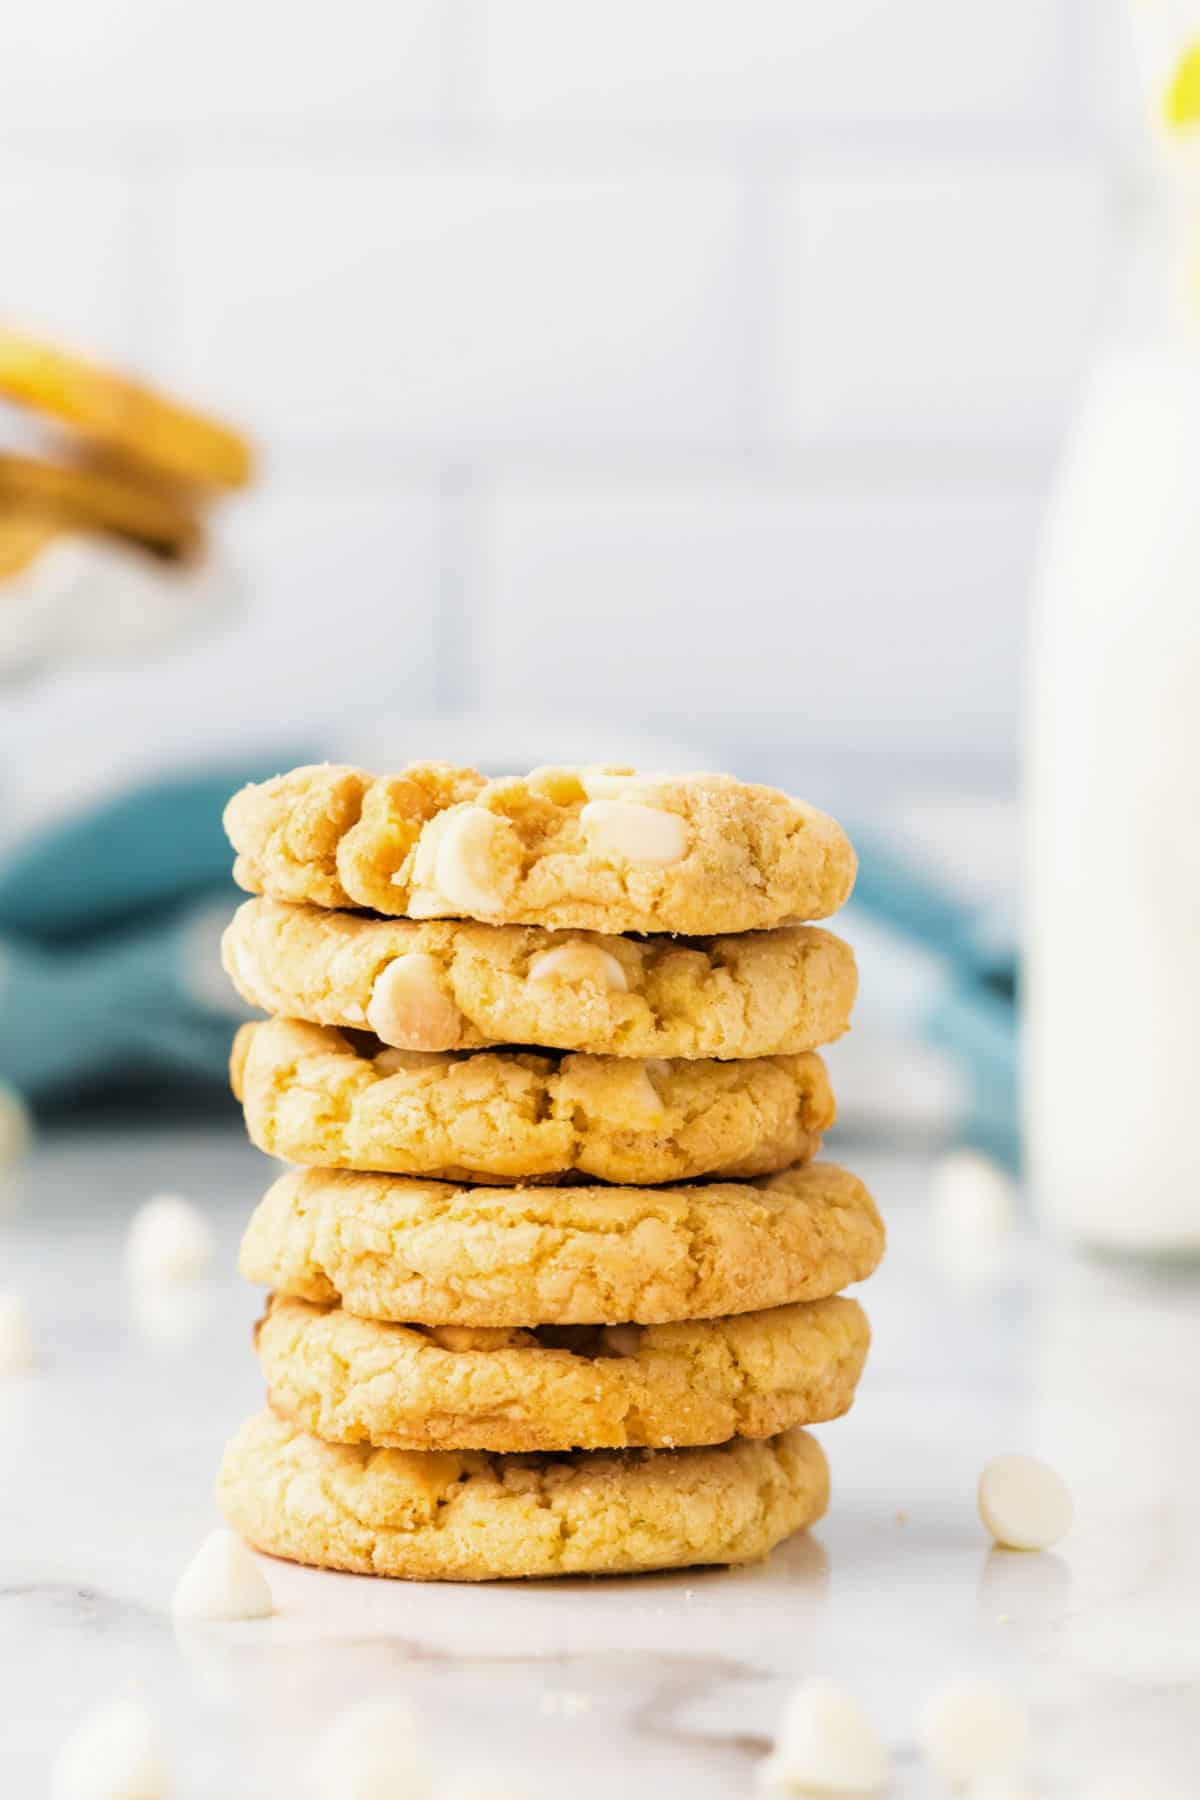 Stack of 6 lemon oreo crunch cookies on white counter.